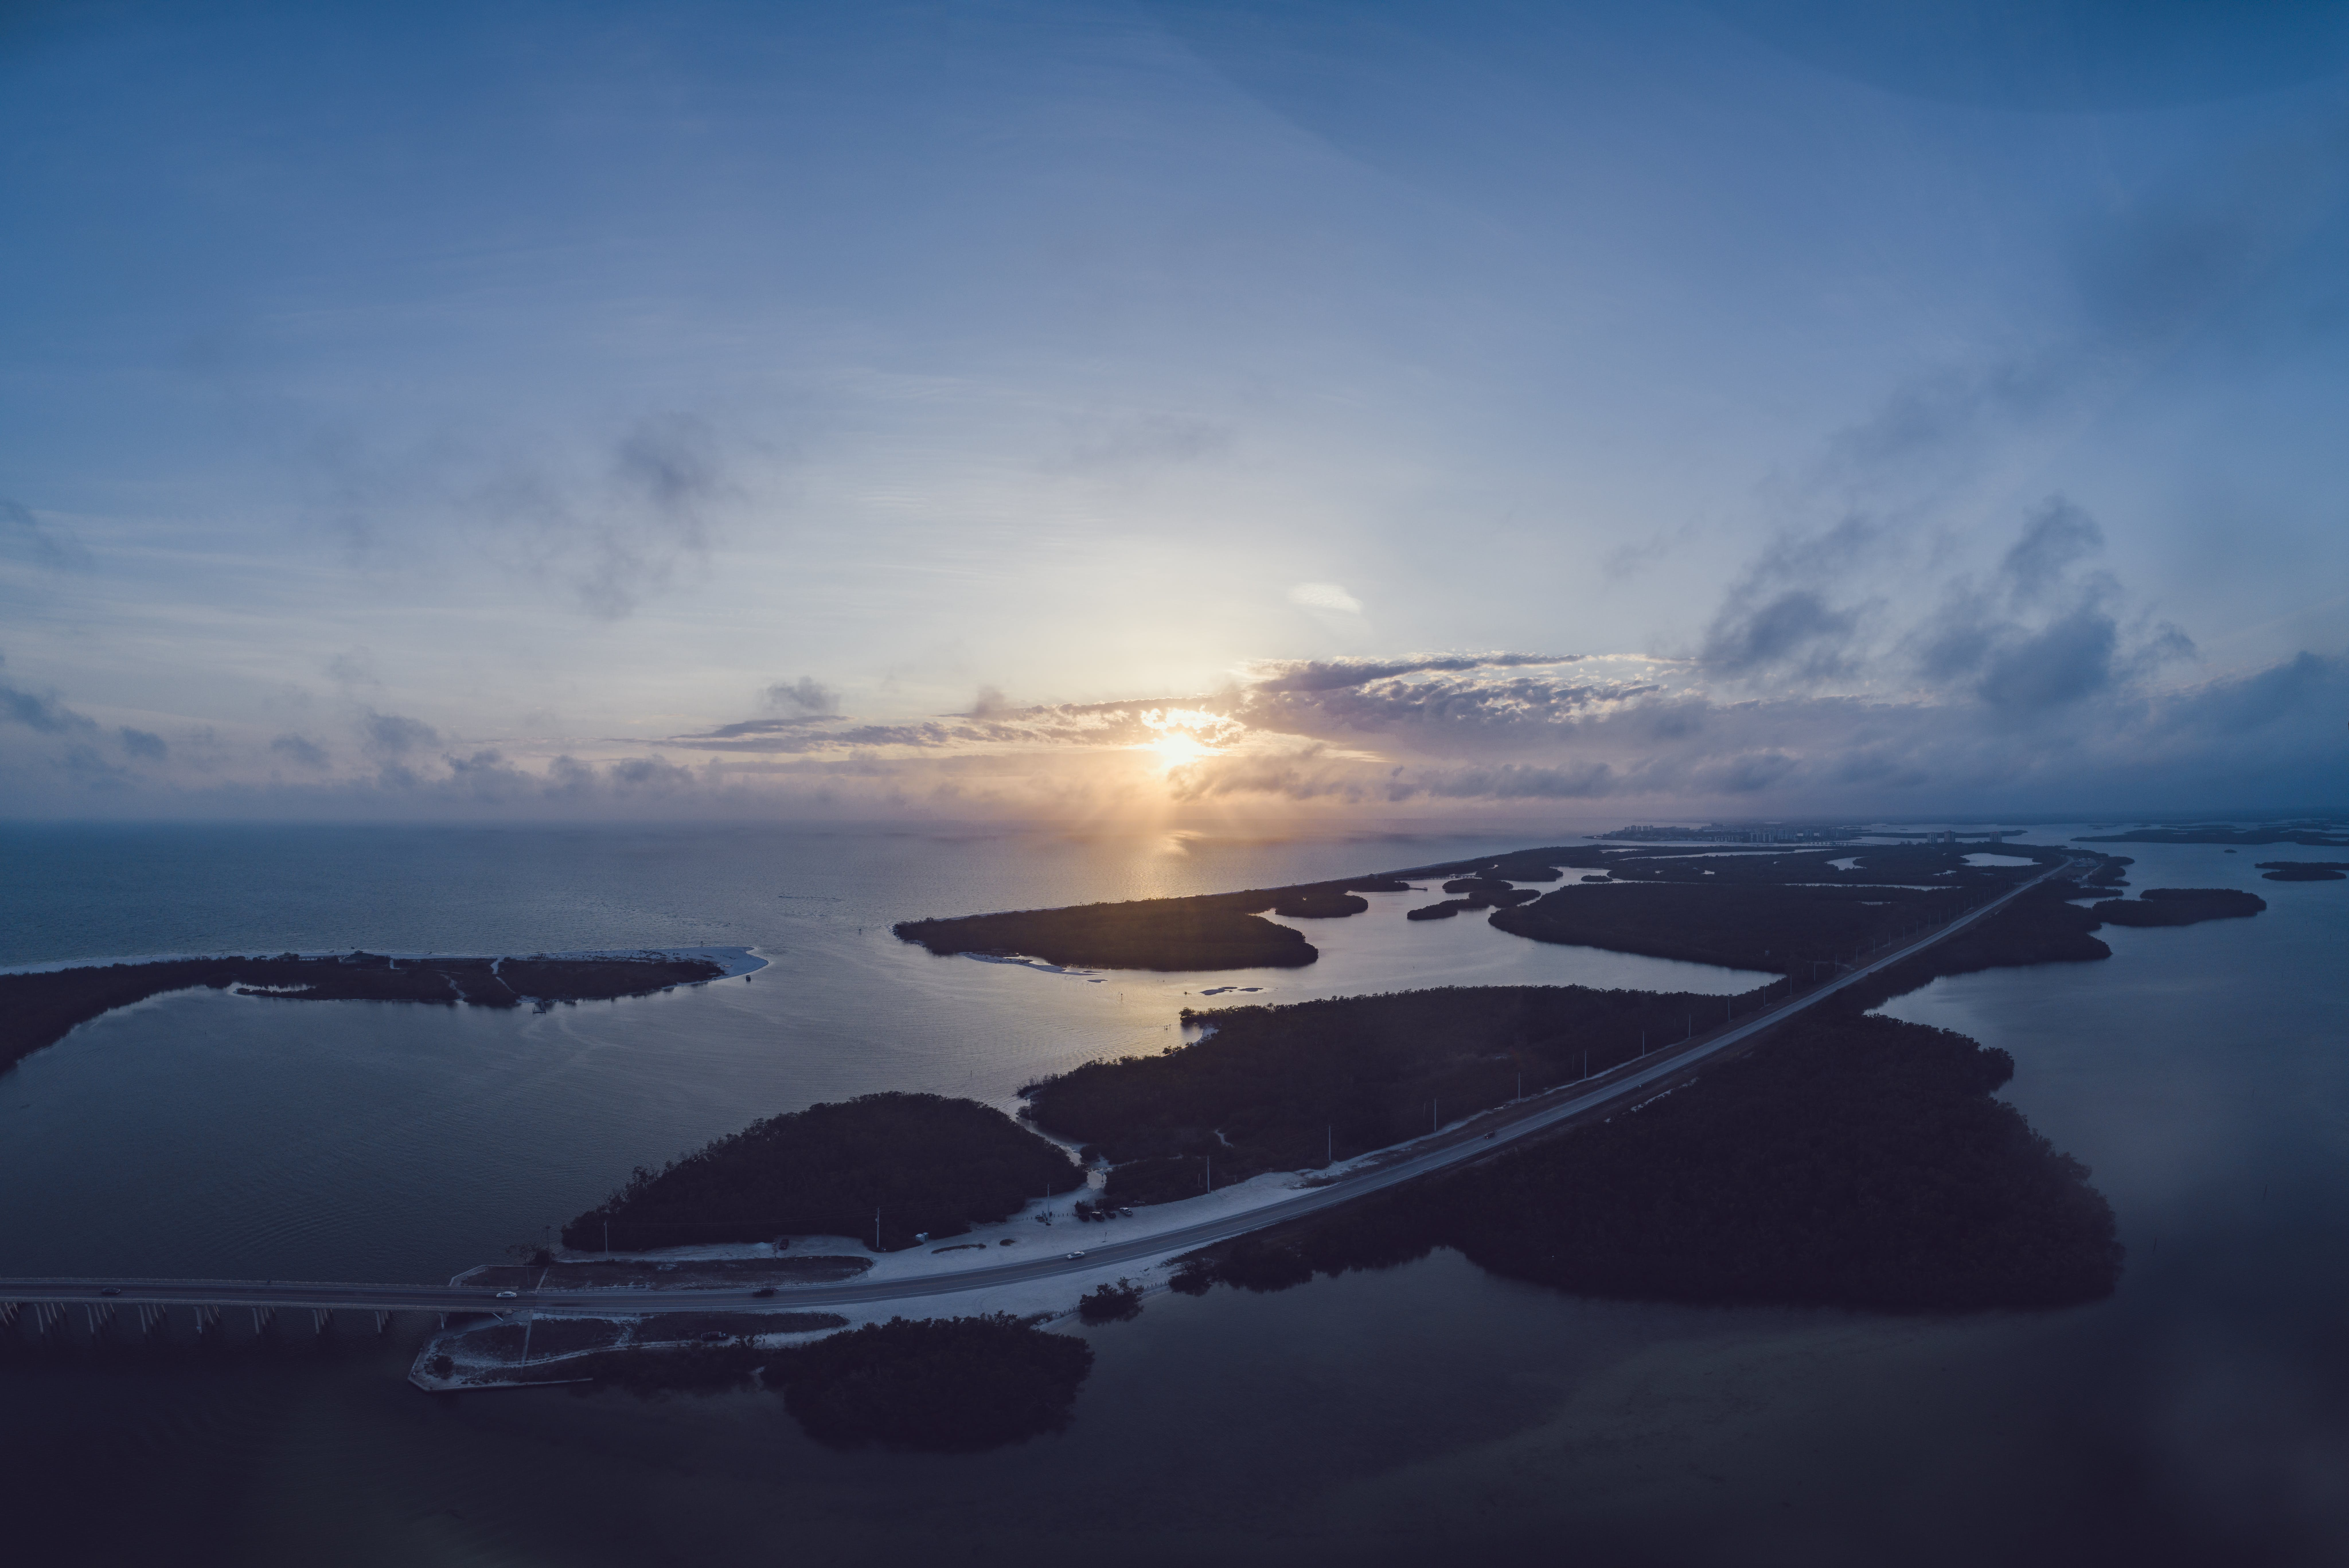 Aerial Photography of Island during Sunset